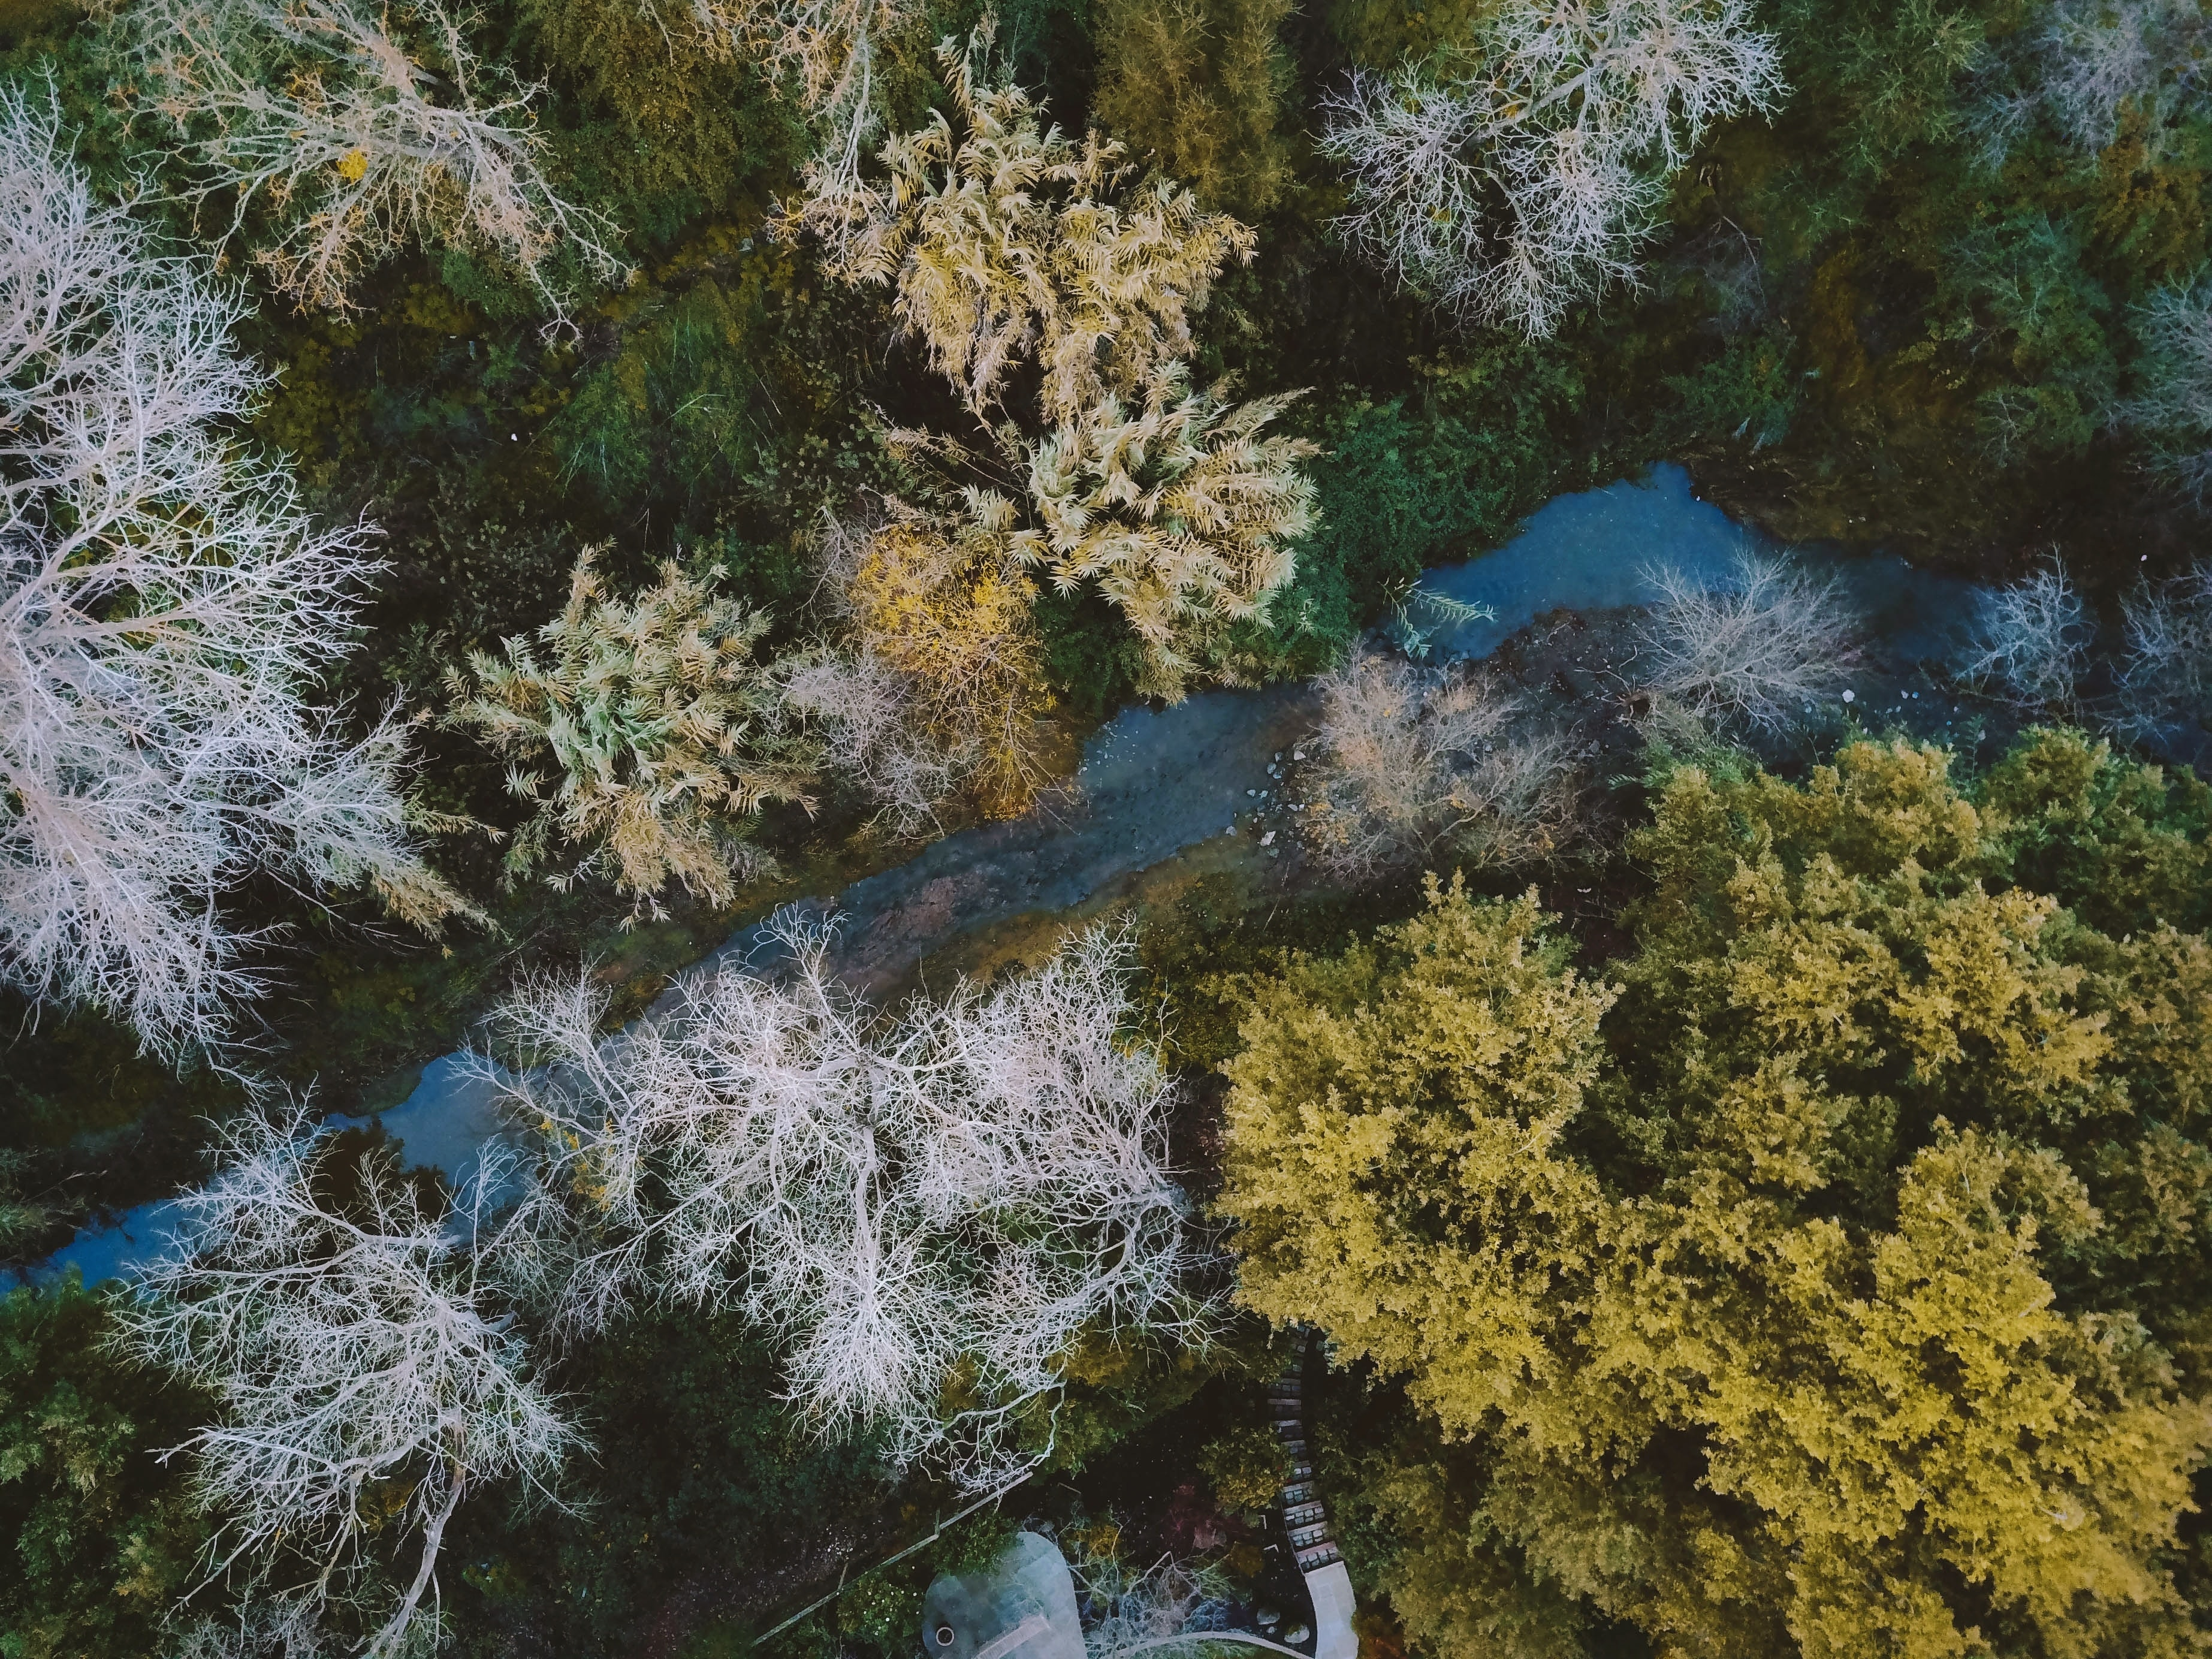 A drone shot of a forest with wispy trees around a small stream